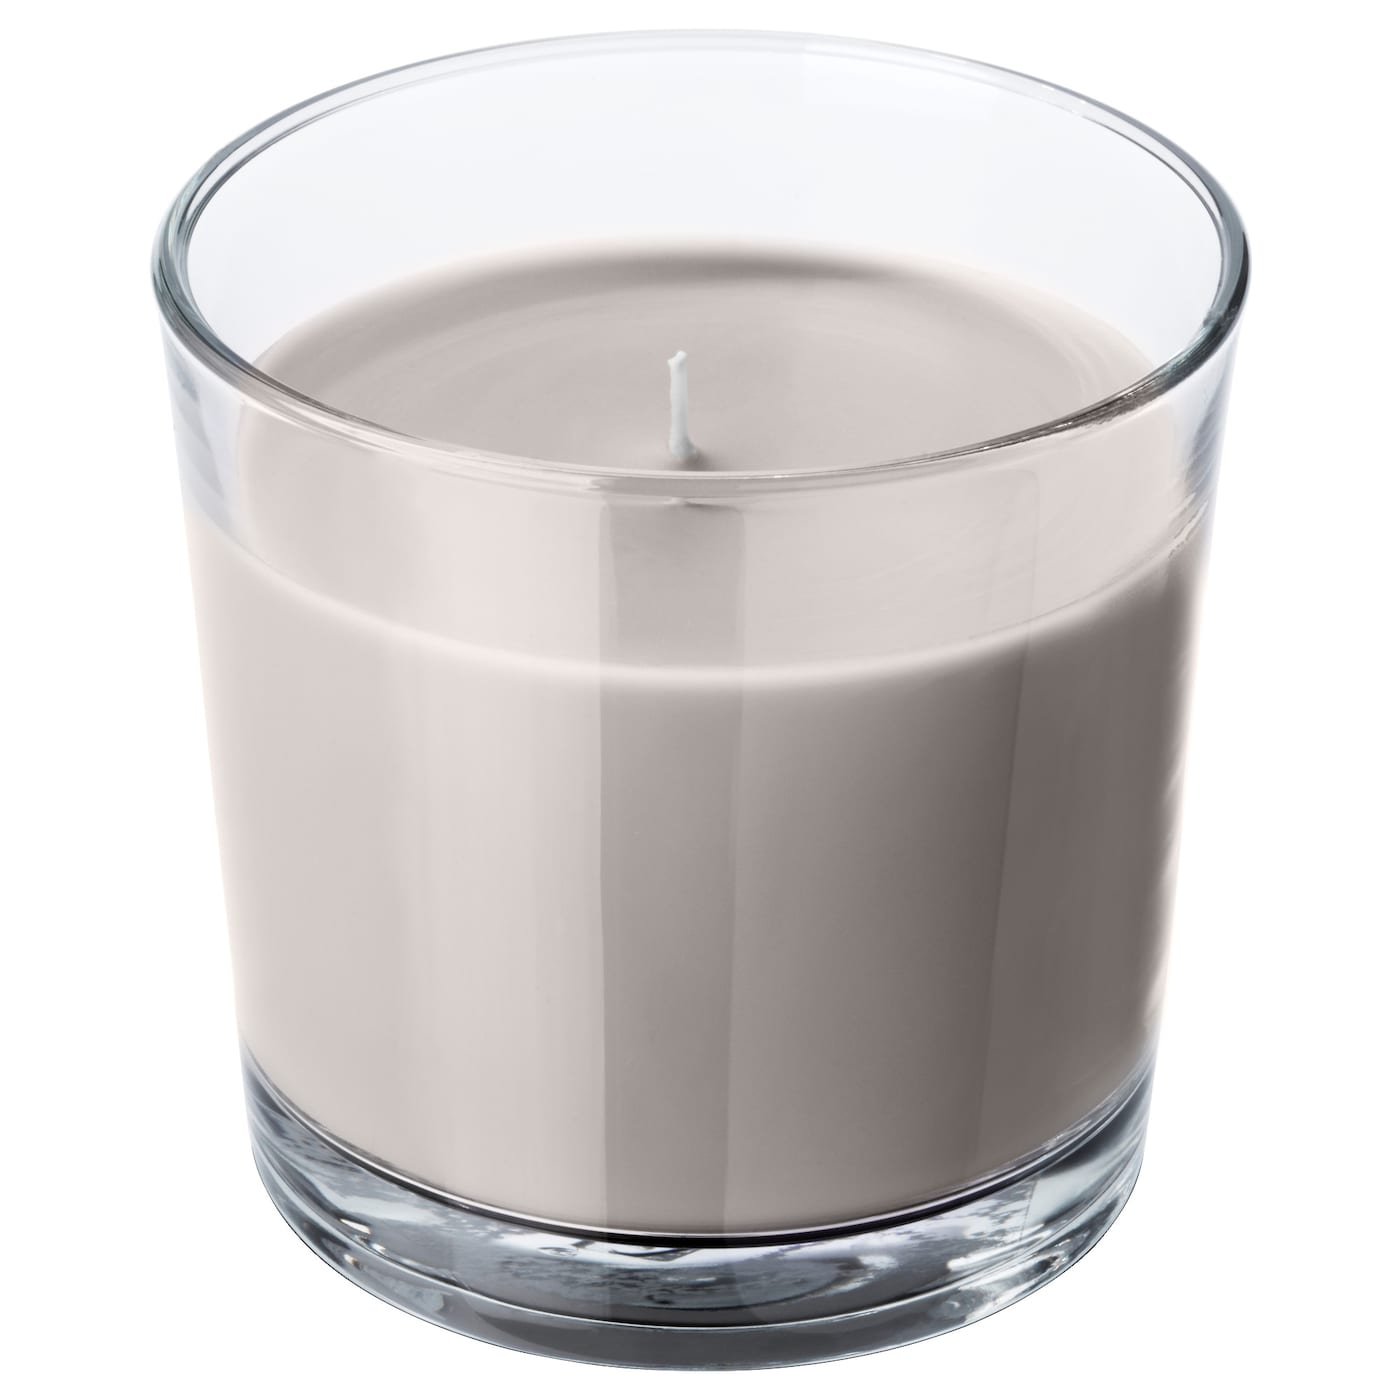 IKEA SINNLIG scented candle in glass Spicy scent of nutmeg, cinnamon and vanilla.